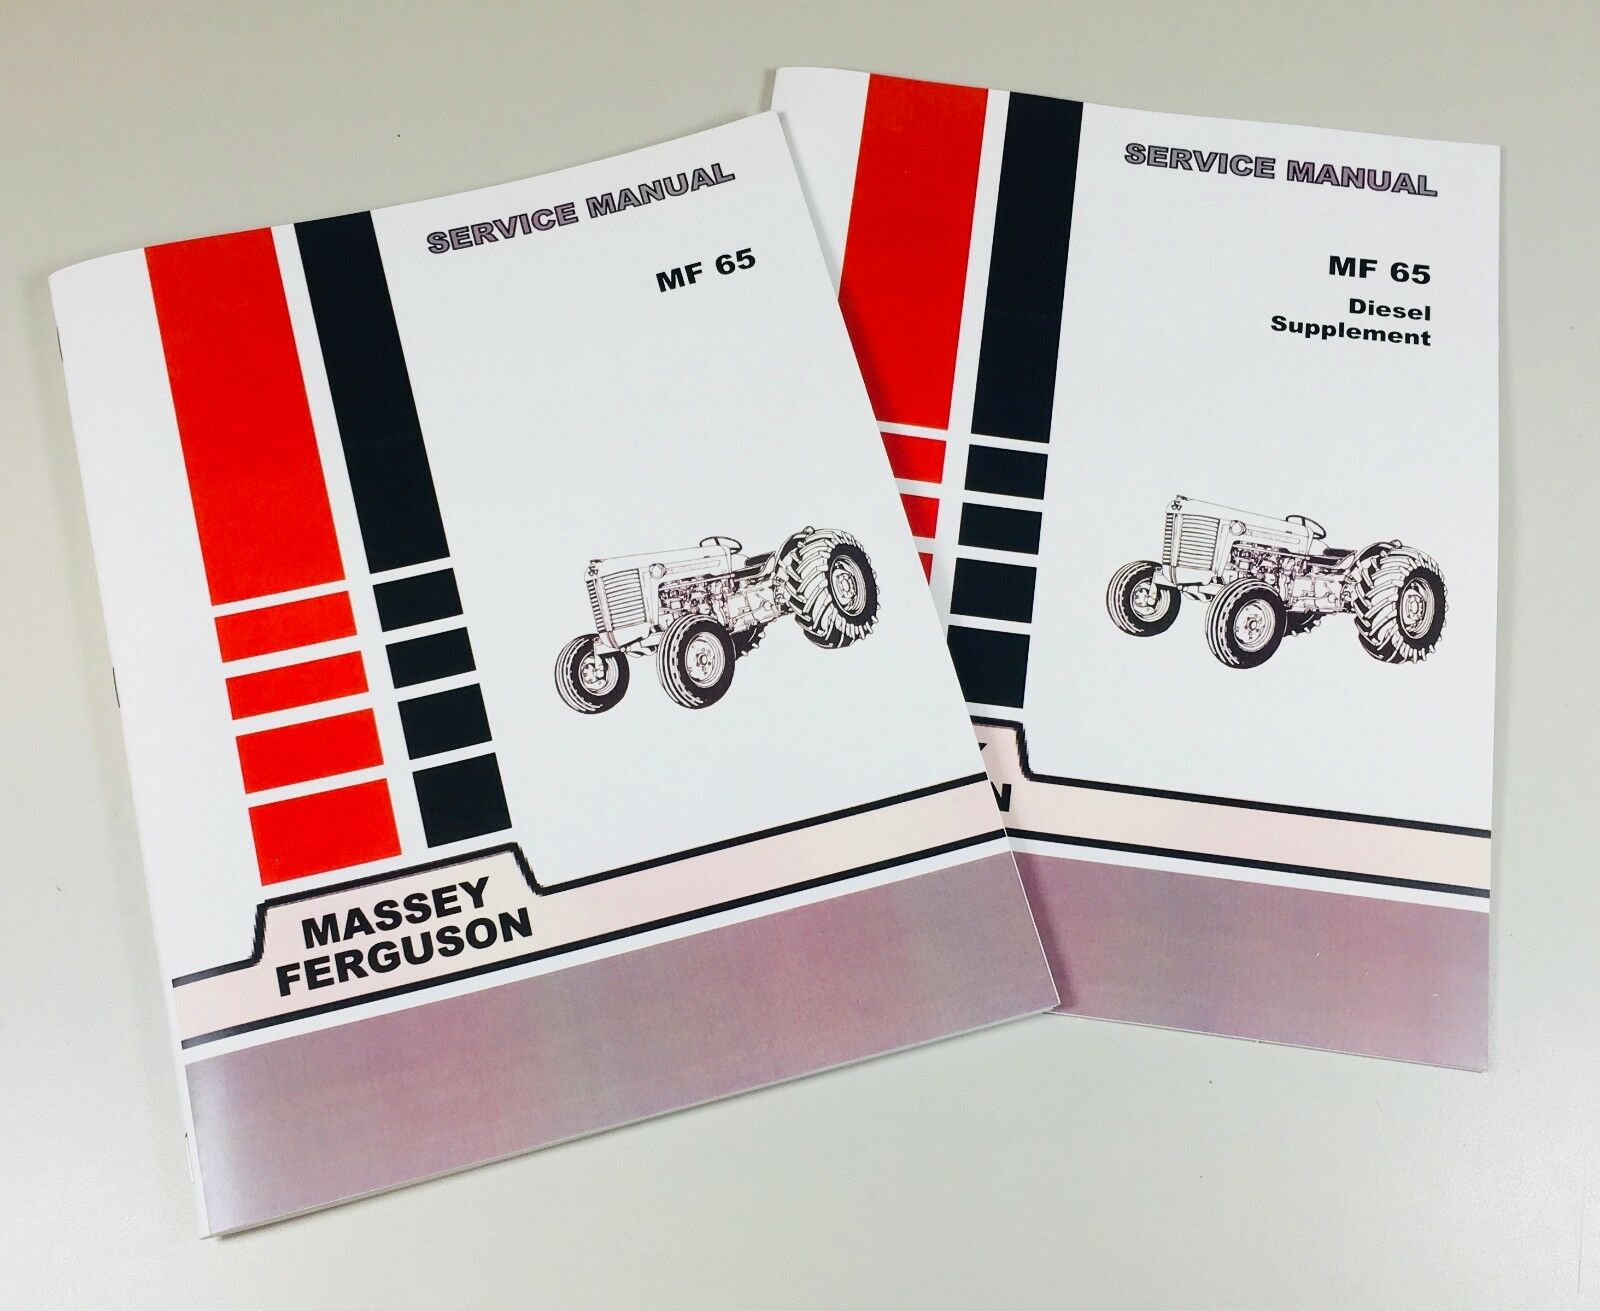 65 Massey Ferguson Diesel Tractor Technical Service Shop Repair Manual MF65  MF 1 of 9FREE Shipping See More